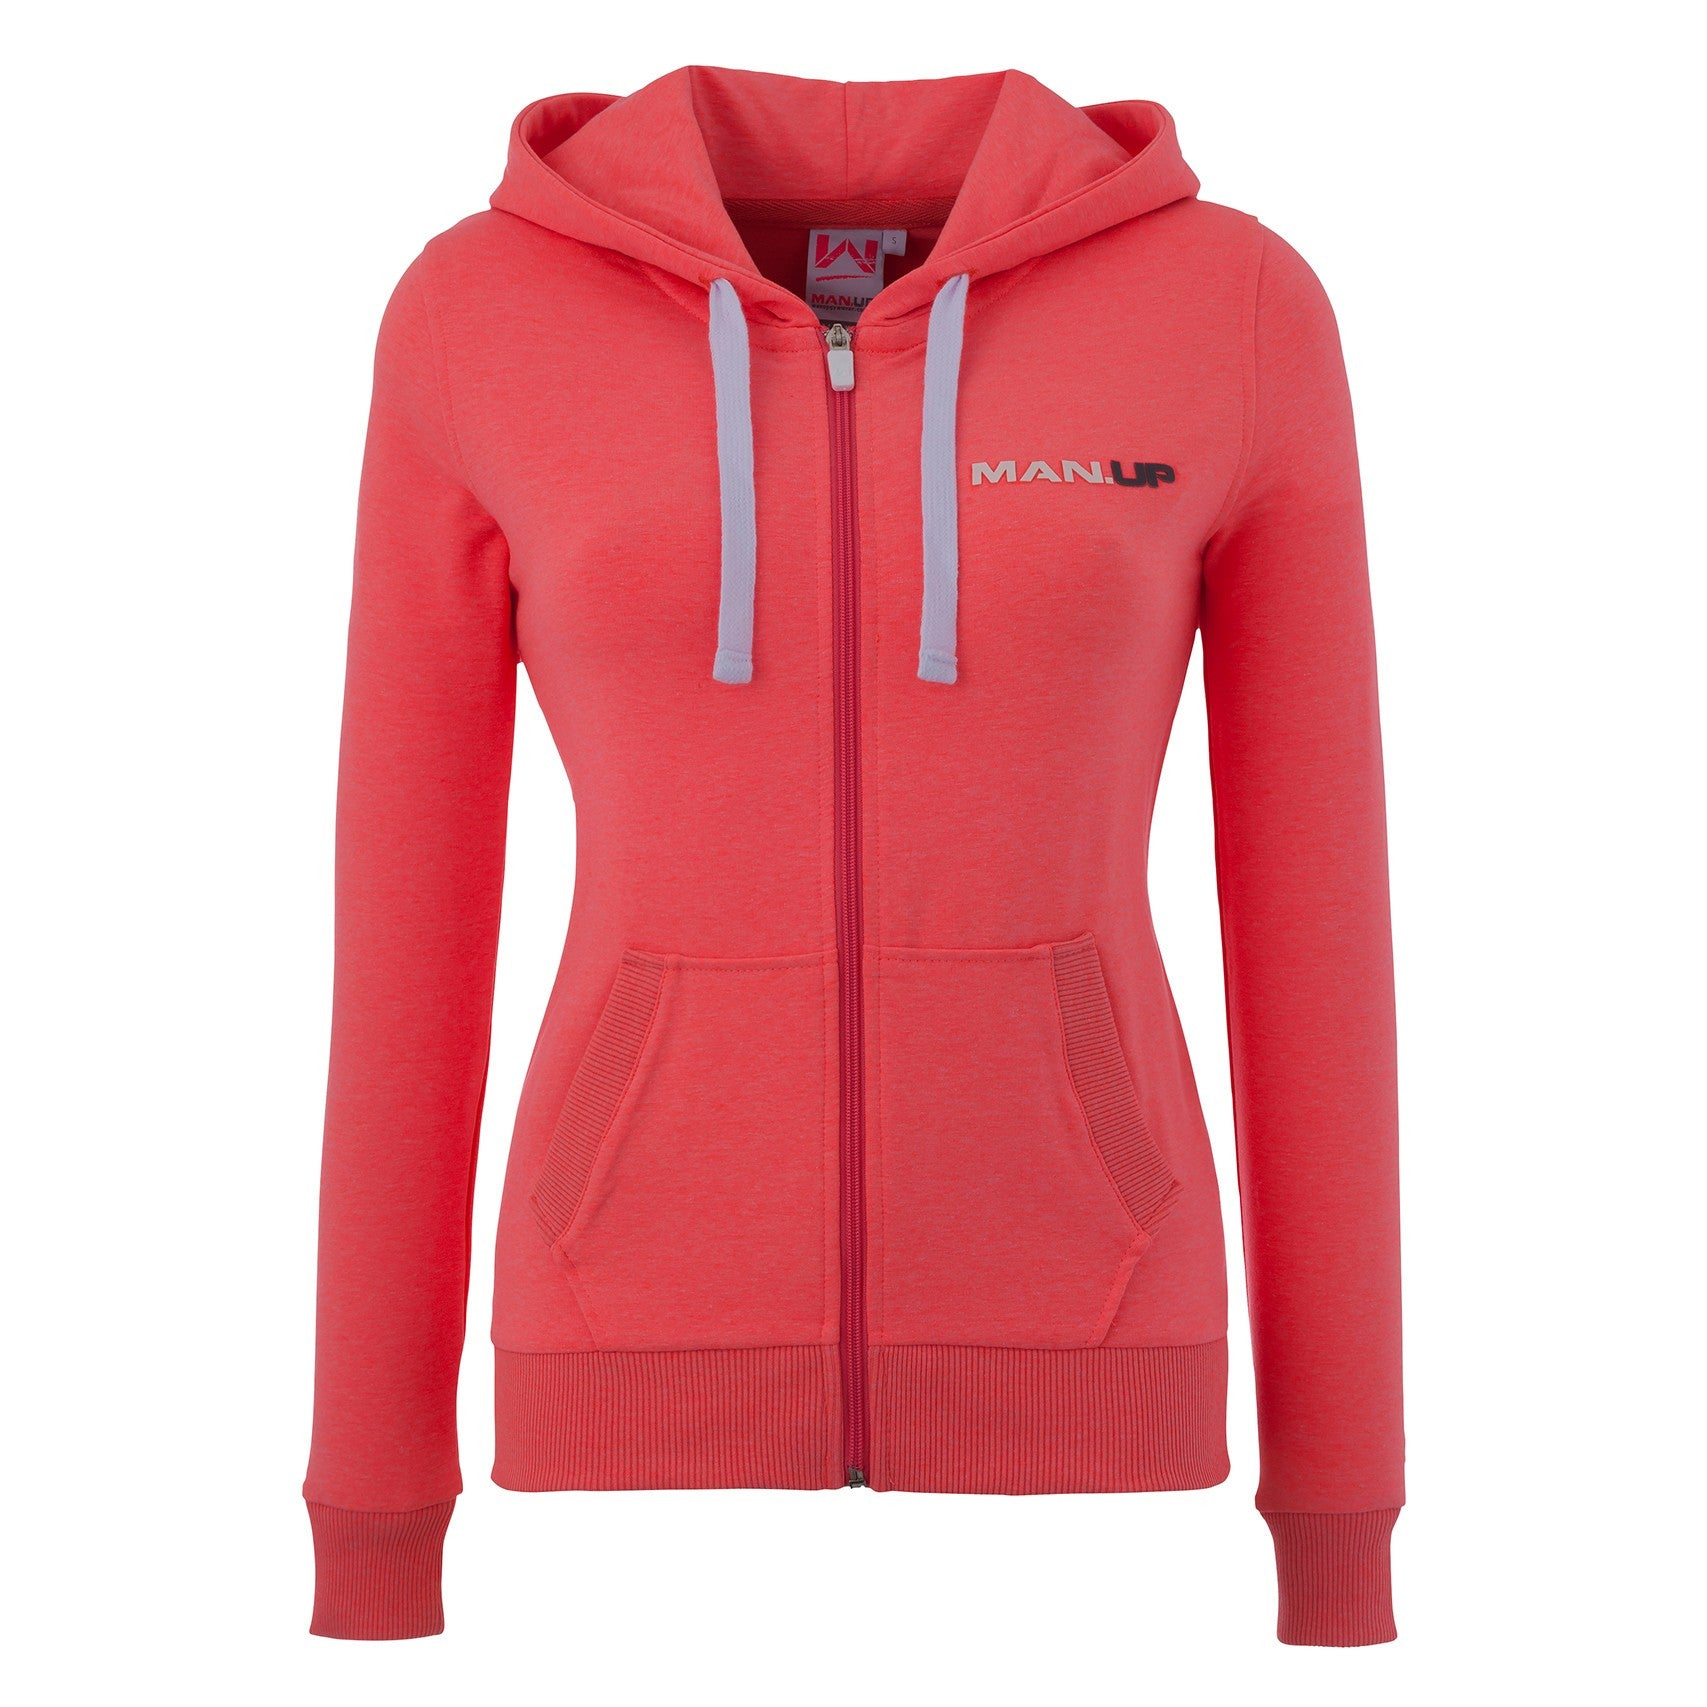 e5c000396f6 Man Up Womens Gym Hoodie Pink - Shop4Supplements